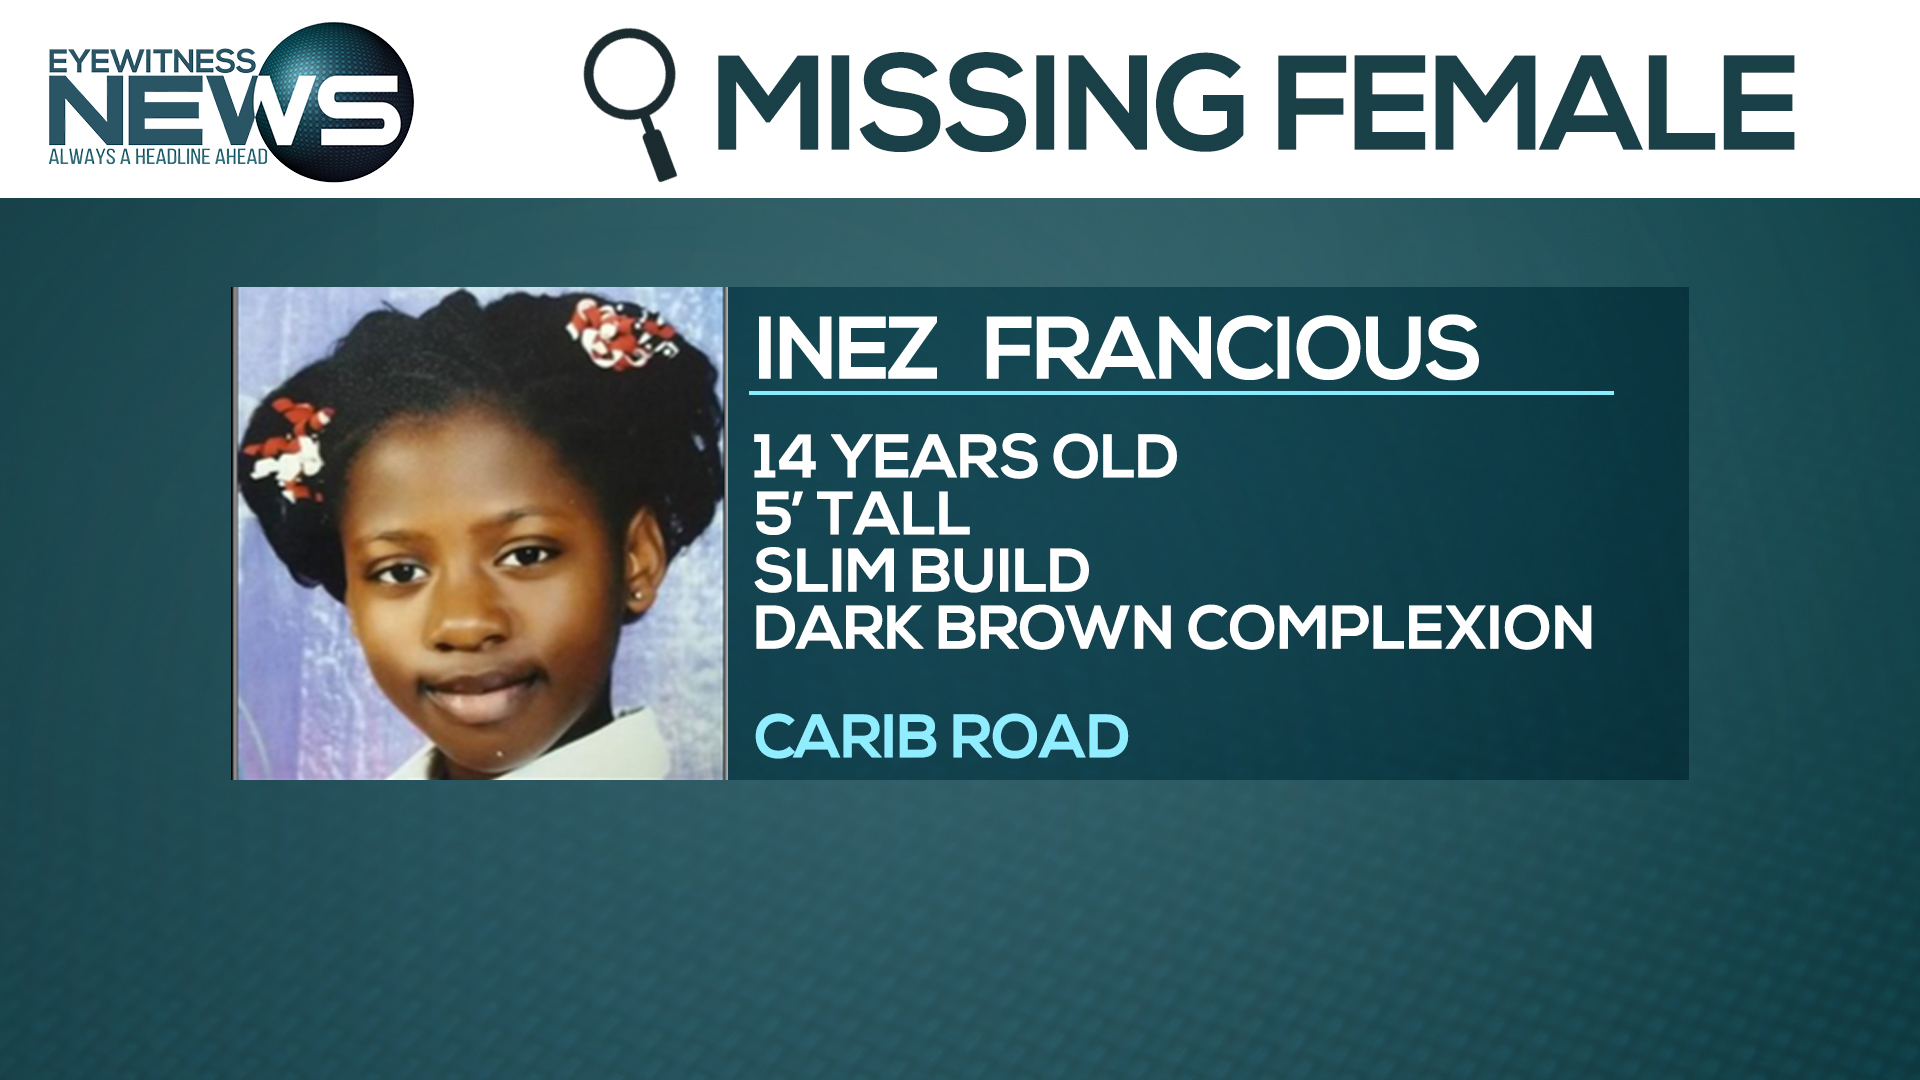 Police search for missing teen